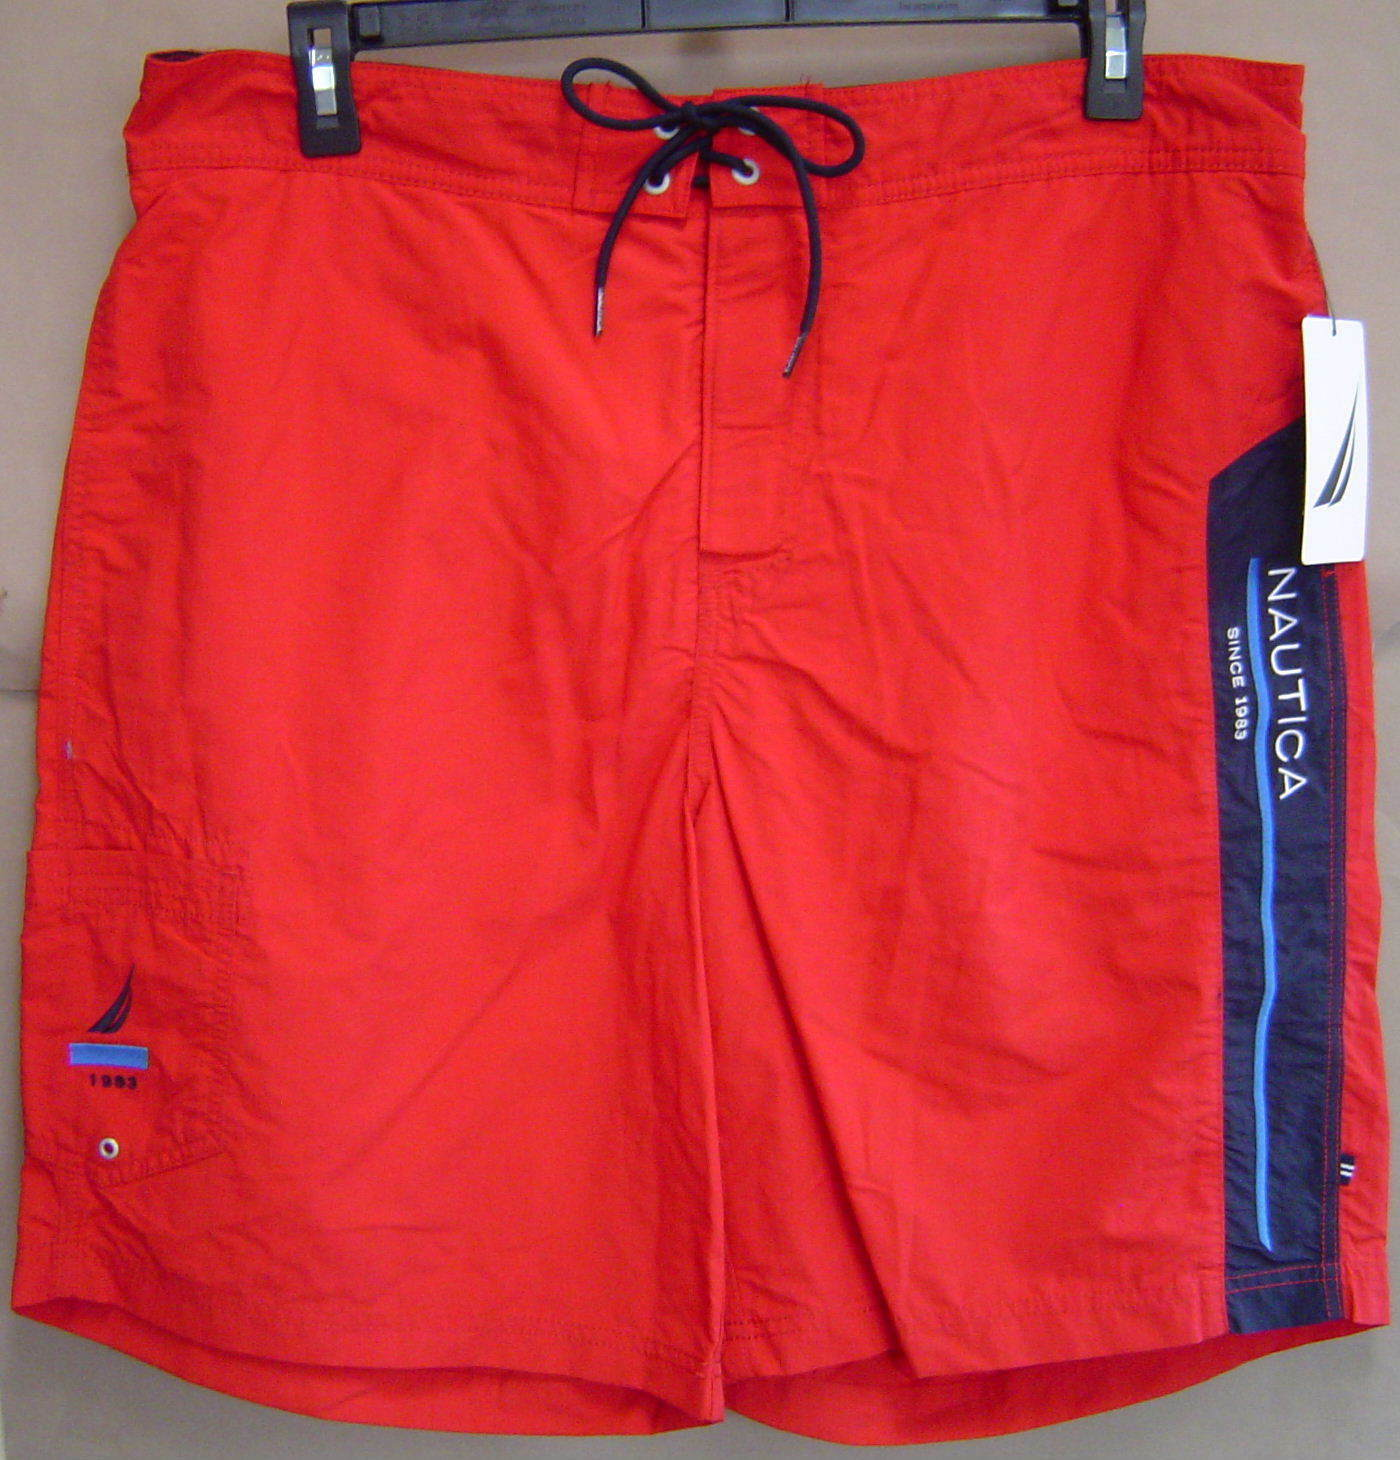 NWT  NAUTICA Mens XL RACER RED Swim Board Shorts Cargo Trunks T34003